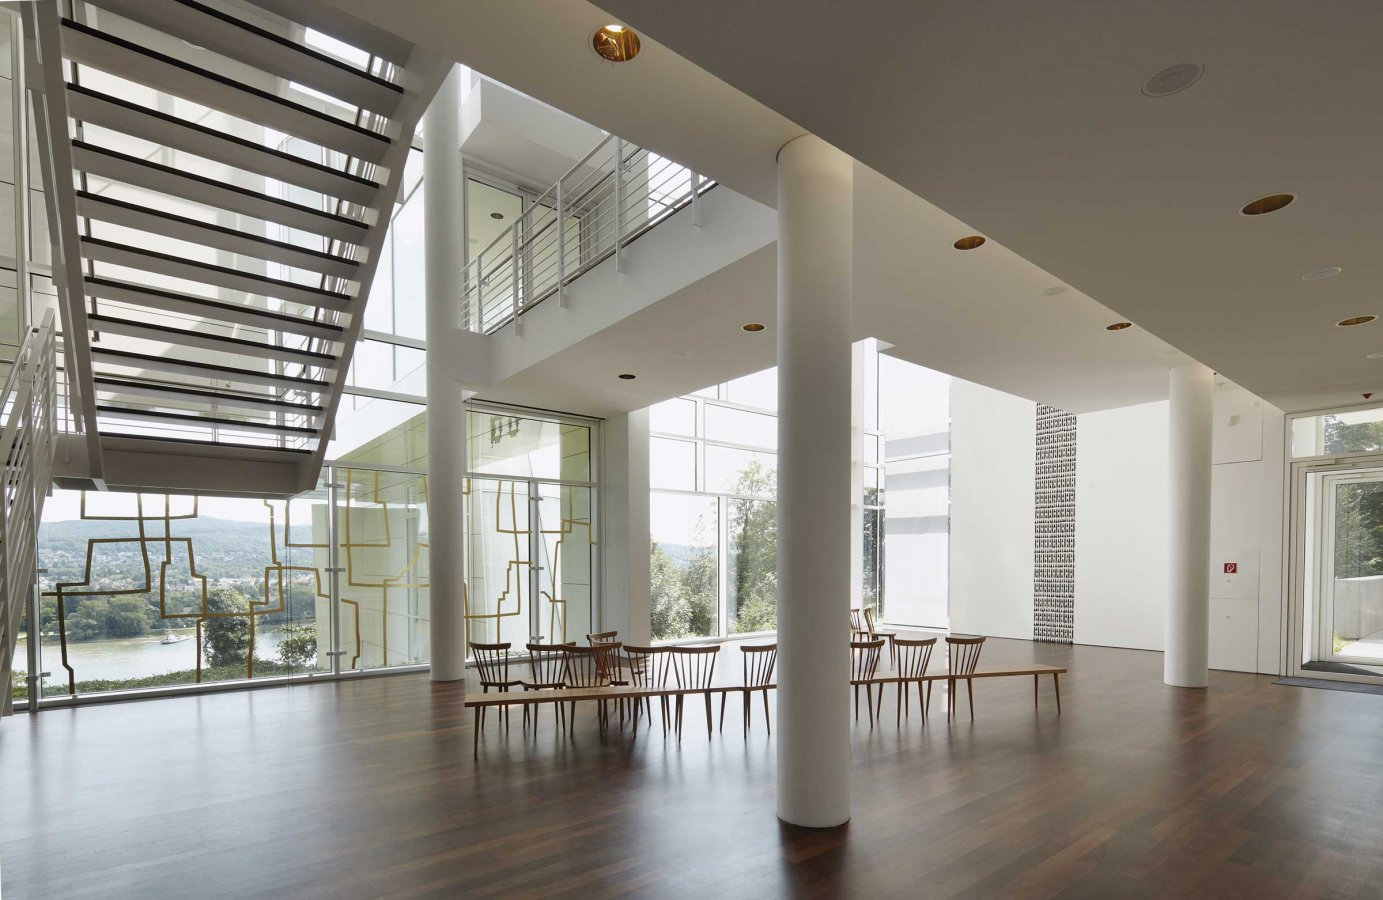 Lobby of the new building with a view of the Rhine © Arp Museum Bahnhof Rolandseck, photo: Ulrich Pfeuffer GDKE